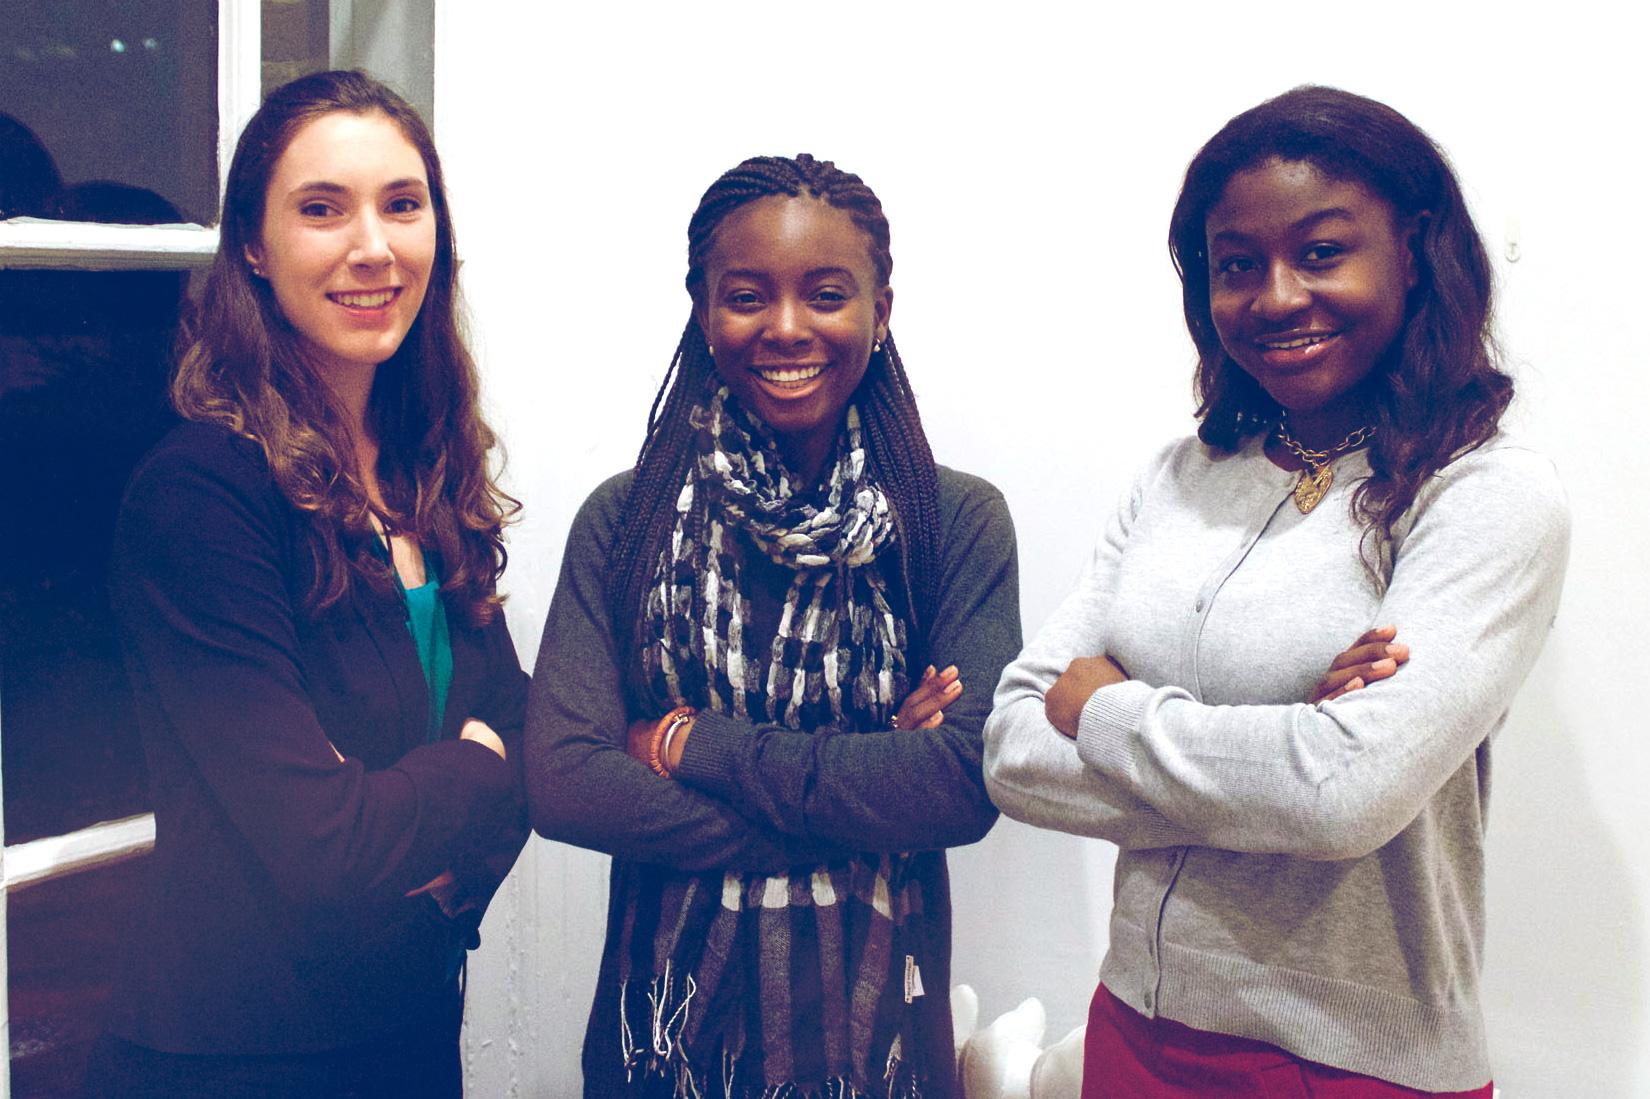 From left, second-year students Jessica Amick, Golda Houndoh and Nadjad Nikabou-Salifou are the winners of the 2017 Hannah Graham Memorial Award.